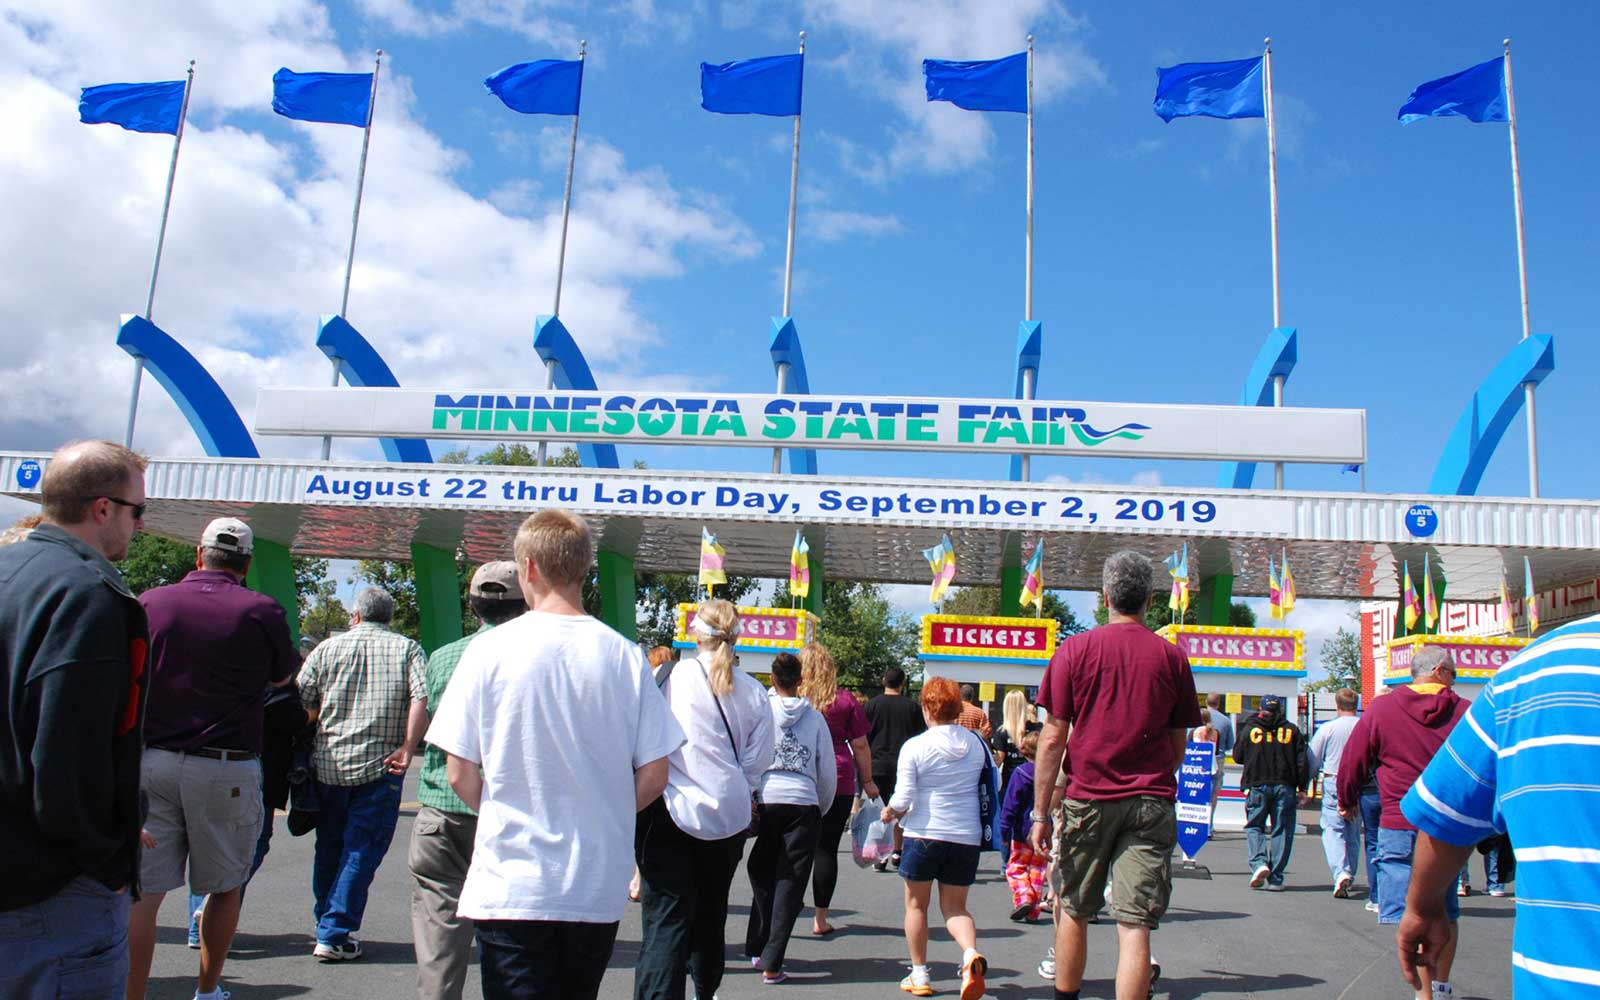 An Enthusiast's Guide to Midwestern State Fairs